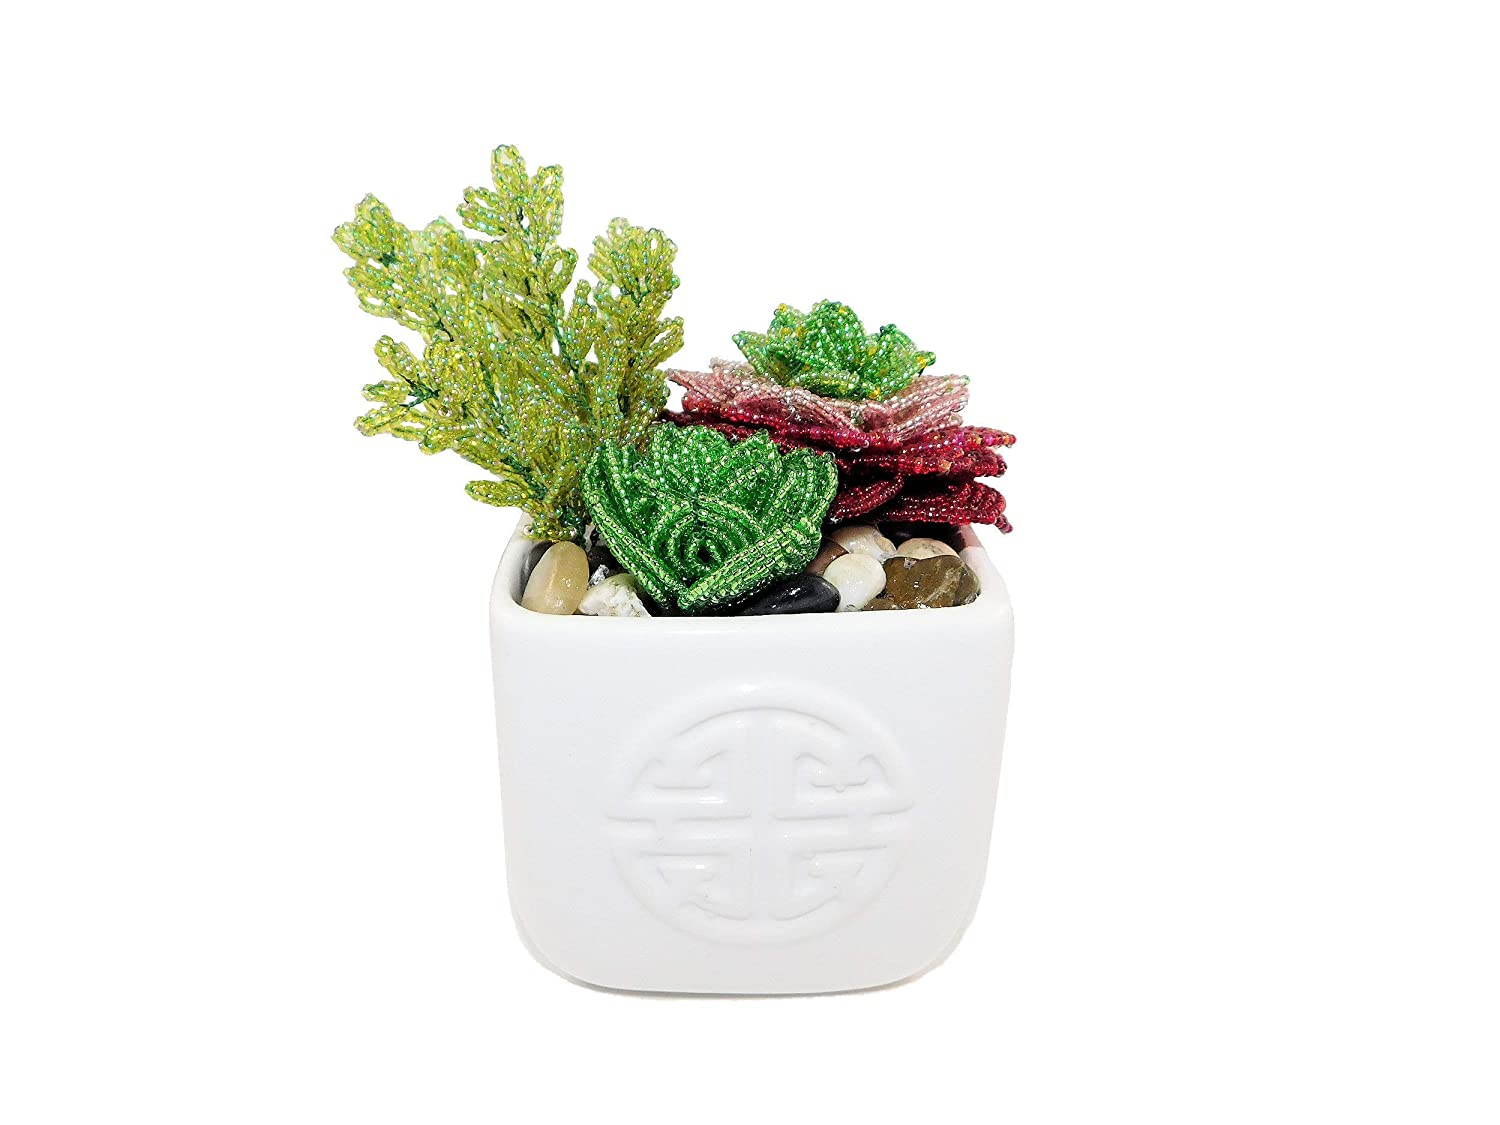 5.5 Inch Handmade Beaded Mixed Ceramic Artifi Pot. Quantity limited Financial sales sale Succulents in